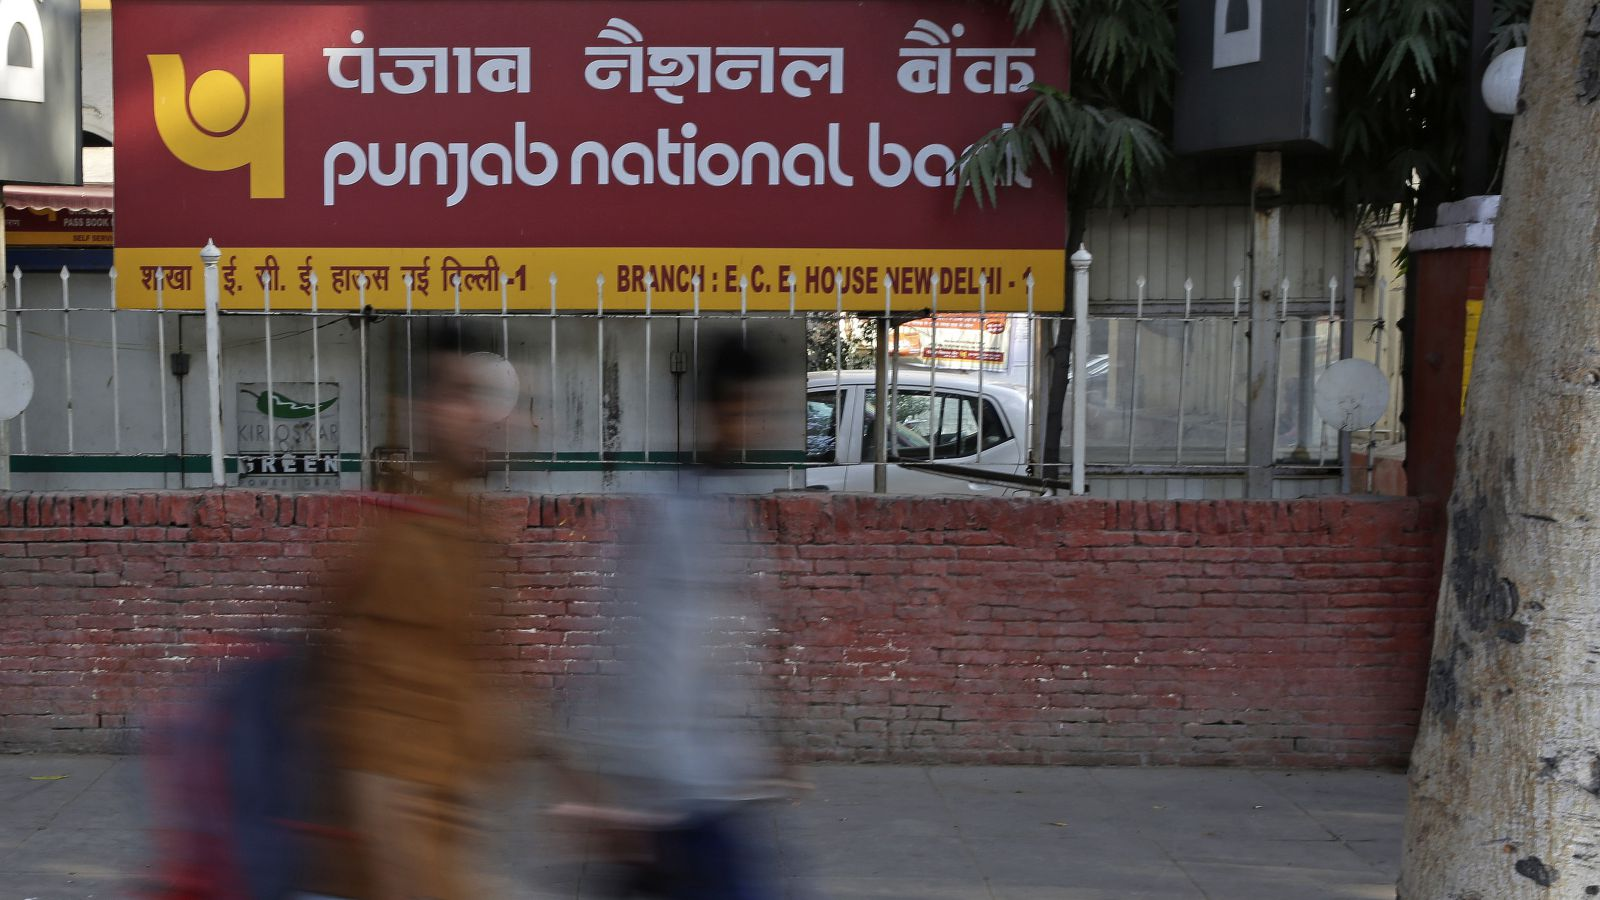 Pedestrians walk past a sign board of Punjab National Bank in New Delhi, India, Thursday, Feb. 15, 2018. State-owned Punjab National Bank has said in a statement that fraudulent transactions totaling $1.8 billion had been discovered in a Mumbai bank branch. Indian media outlets have linked the scam to jeweler Nirav Modi.